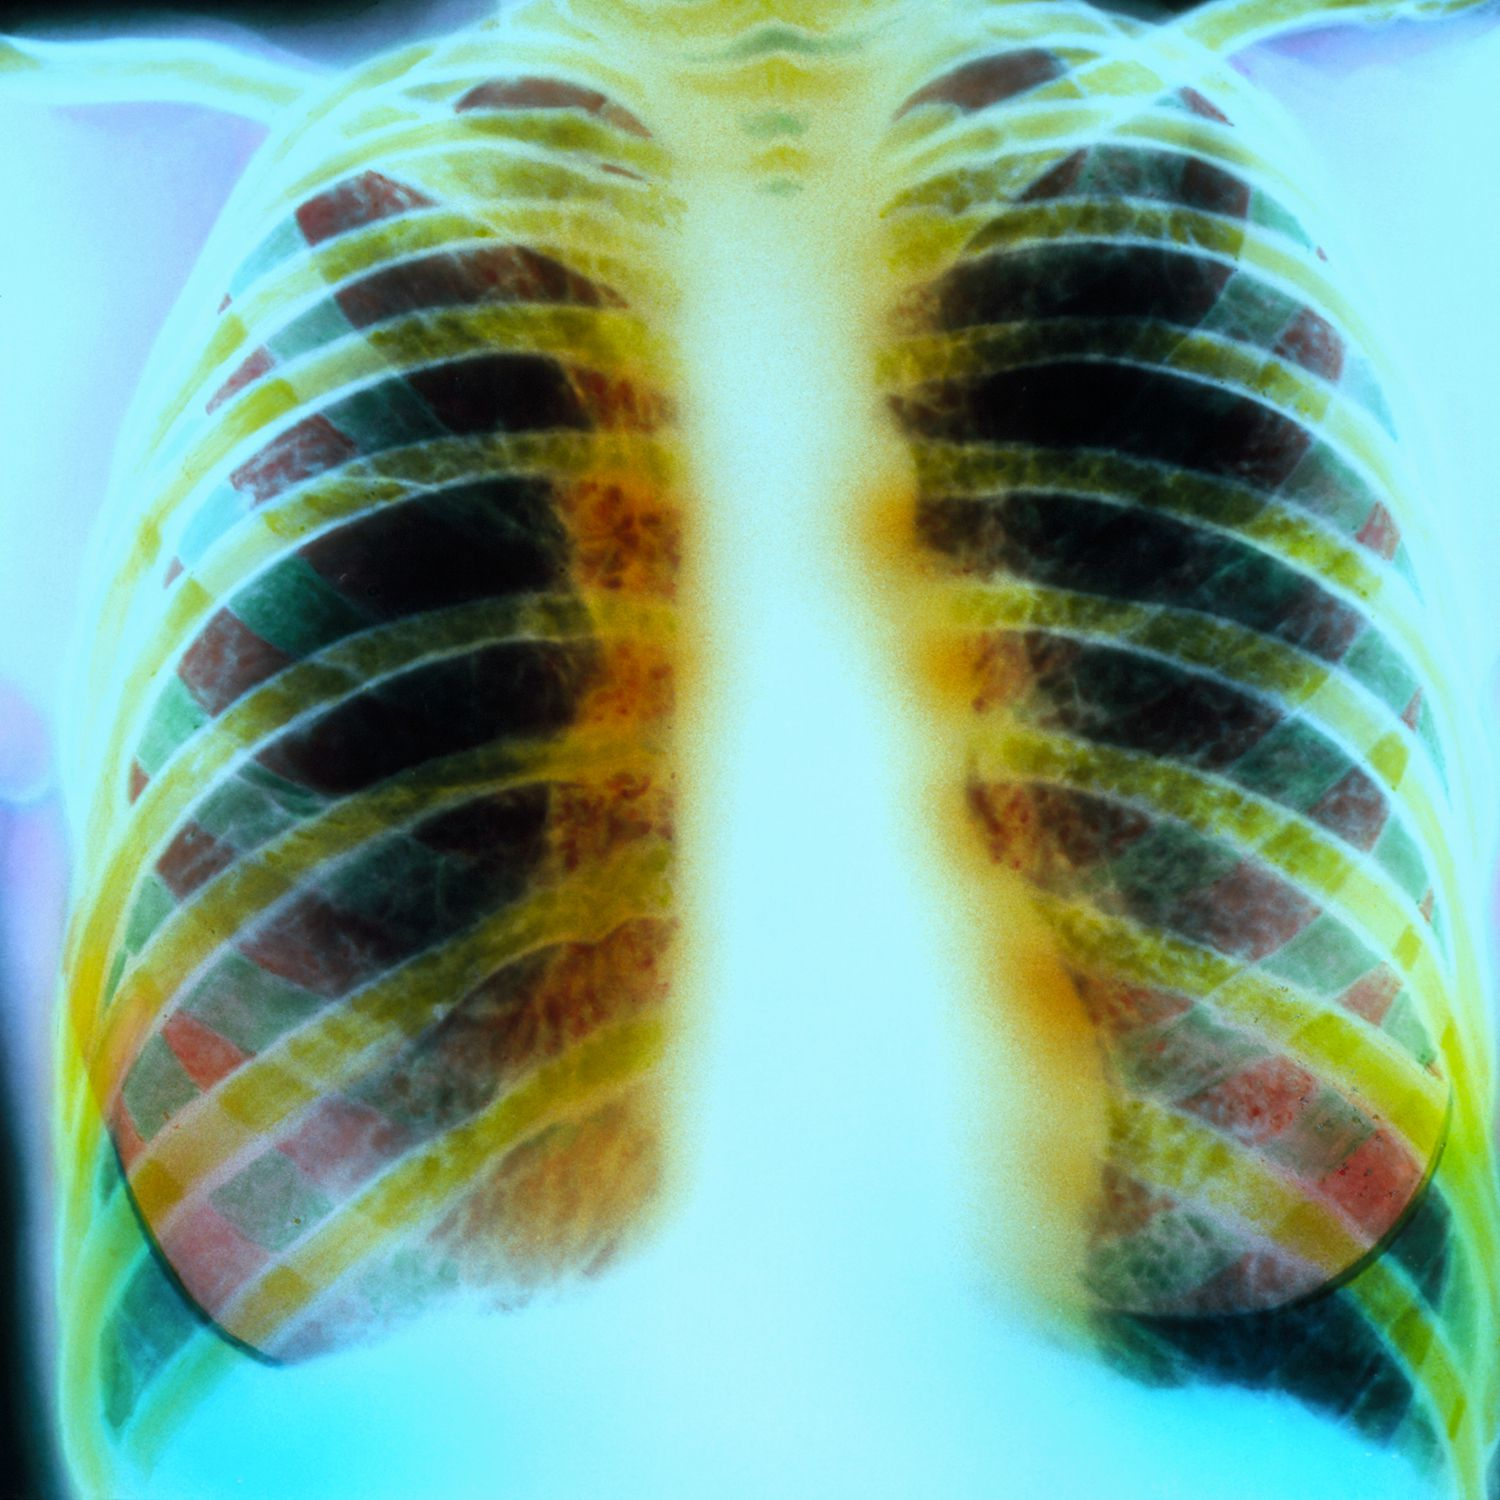 Viral Infections May Affect Cystic Fibrosis Patients: Organisms That Cause Lung Infections In Cystic Fibrosis